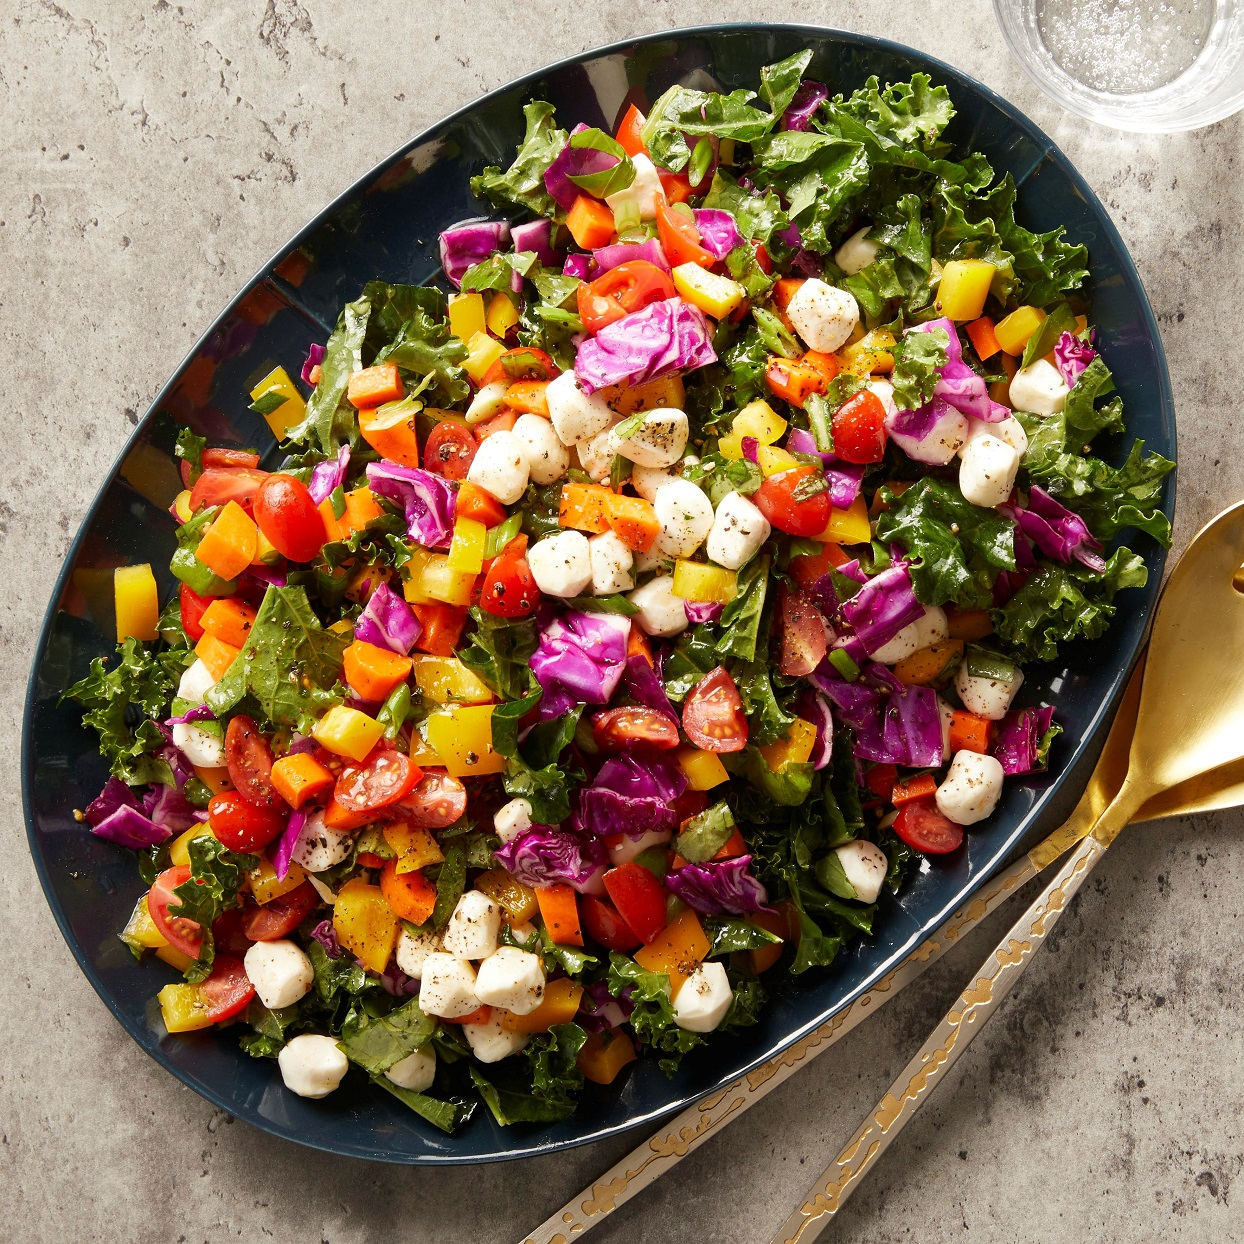 This fresh and colorful salad has all of the delicious flavors you love from the classic caprese salad, plus even more healthy veggies. Double this and top each portion with 3 ounces grilled or roasted chicken to take it from a simple side to a quick main dish. Source: EatingWell.com, January 2020